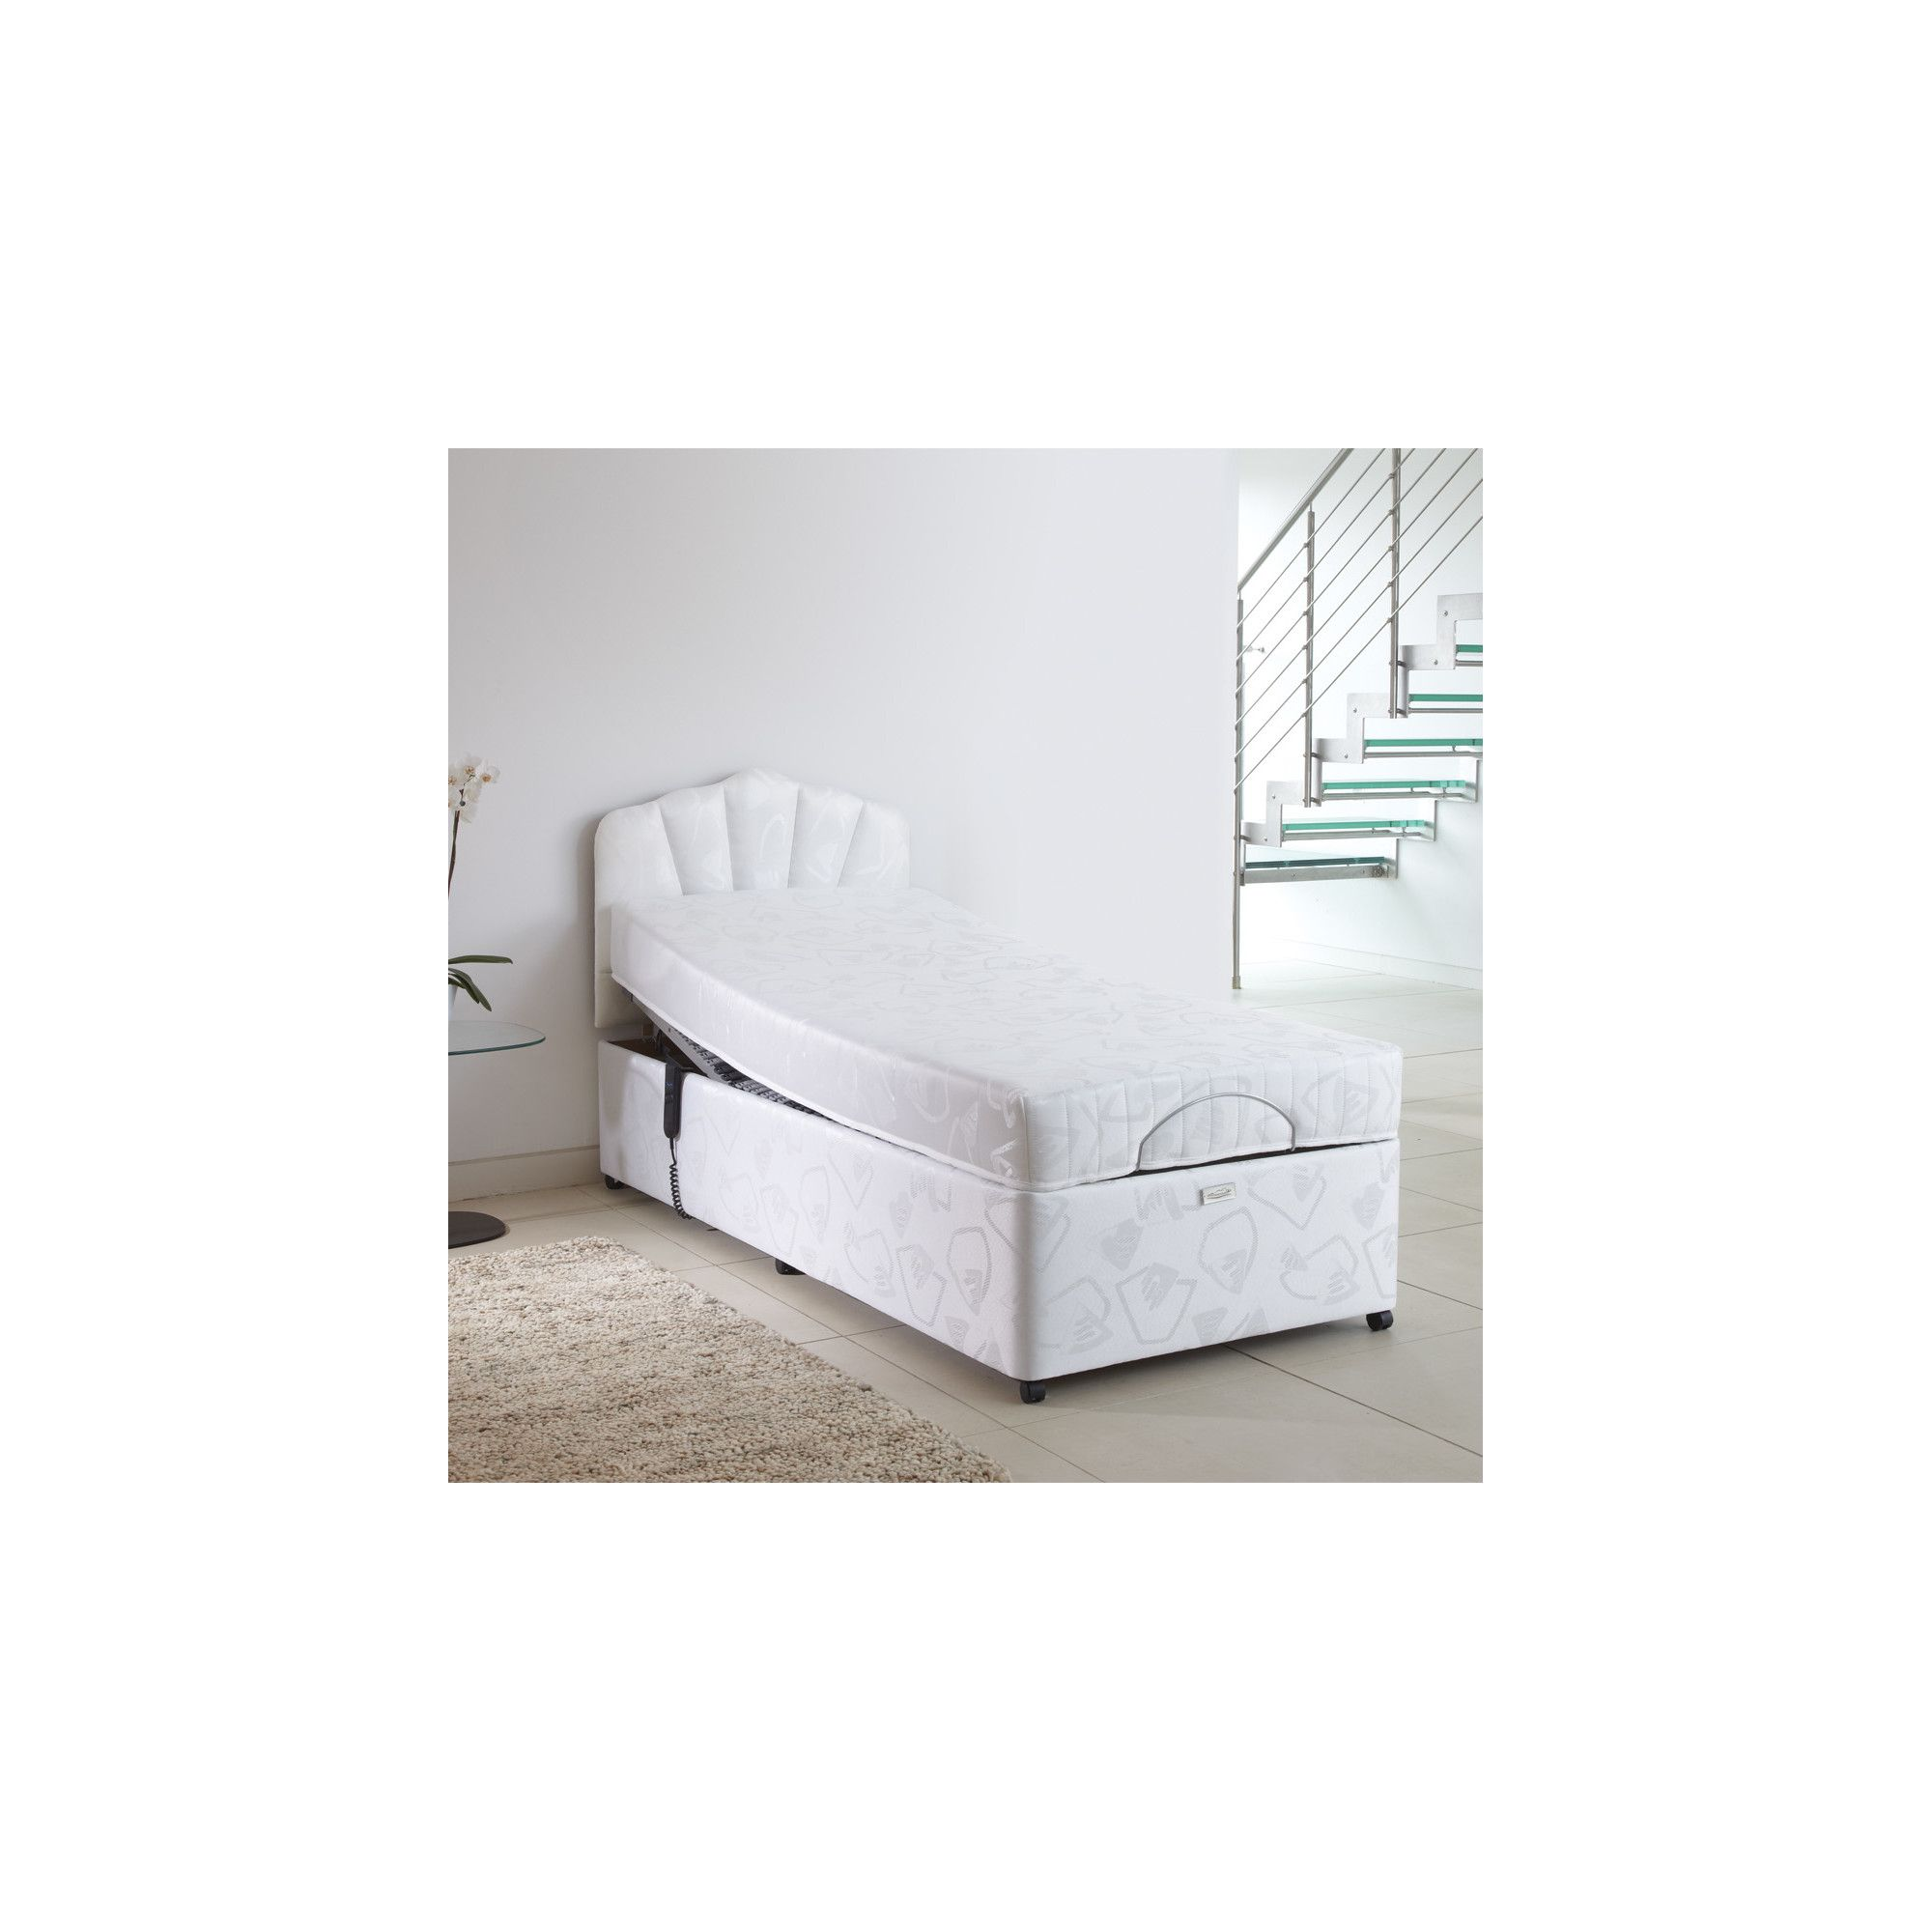 Bodyease Adjustable Deep Base Set with Electro Neptune Mattress - Small Single - 2 Drawers at Tesco Direct